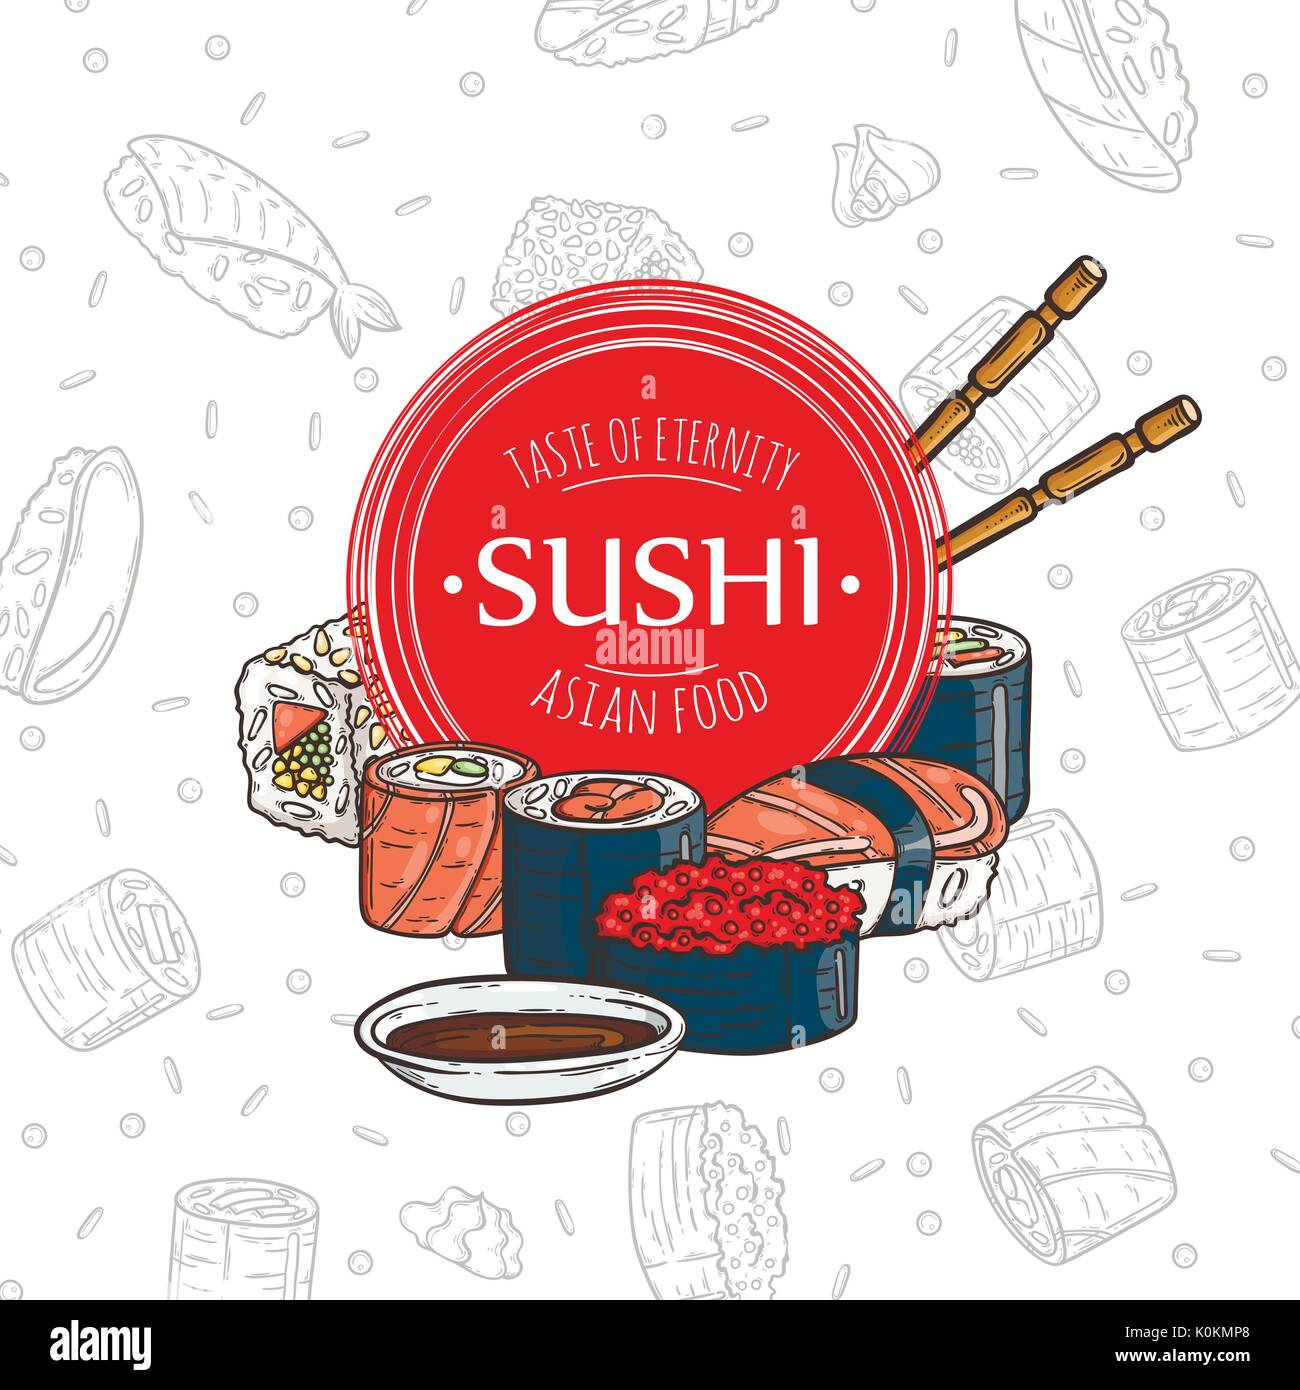 Doodle Sushi Restaurant And Delivery Design Template Asian Food Stock Vector Image Art Alamy